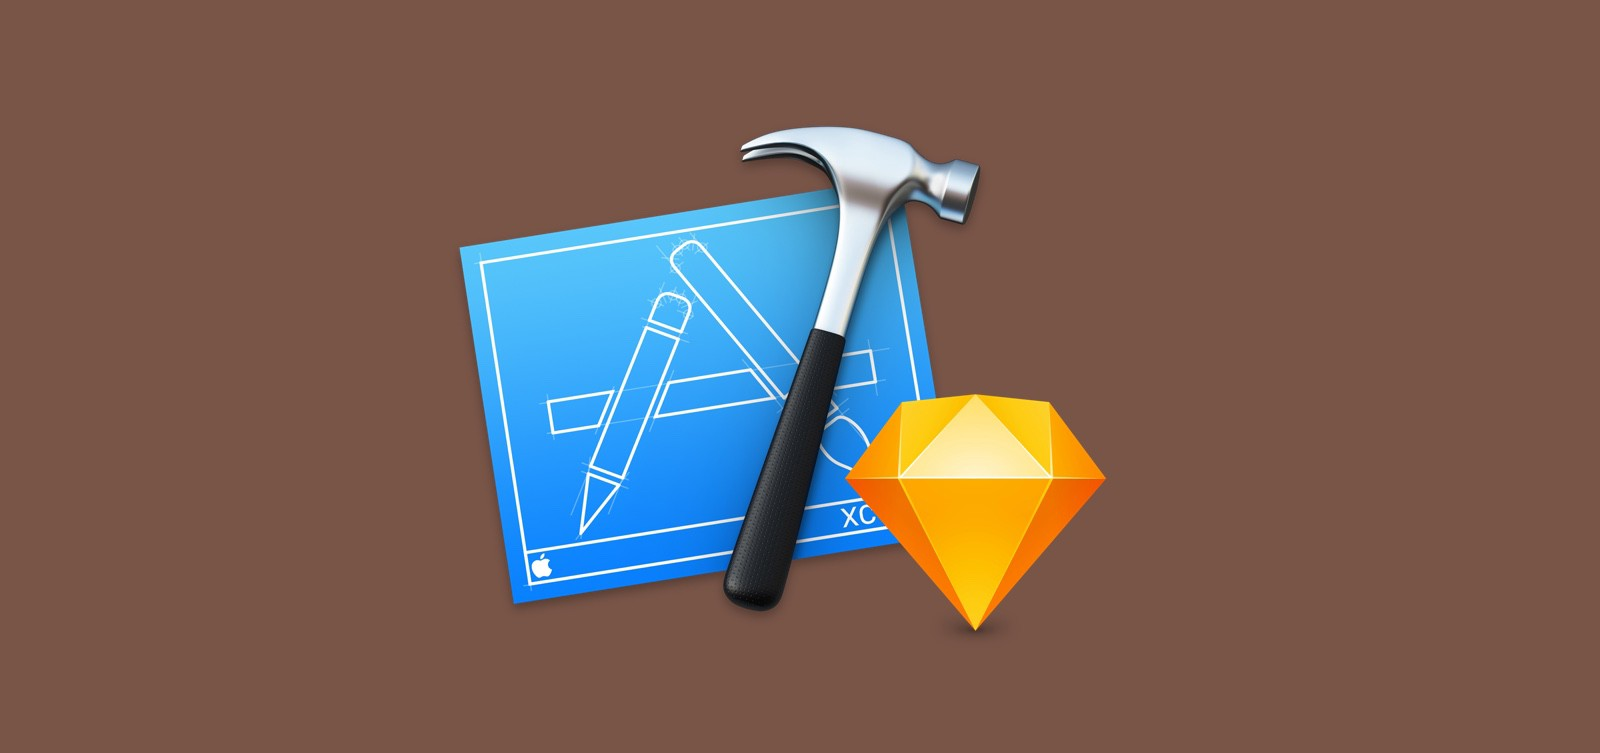 If you're reading this, you probably already know Sketch plugins are suggested to be written in CocoaScript, which is basically JavaScript.